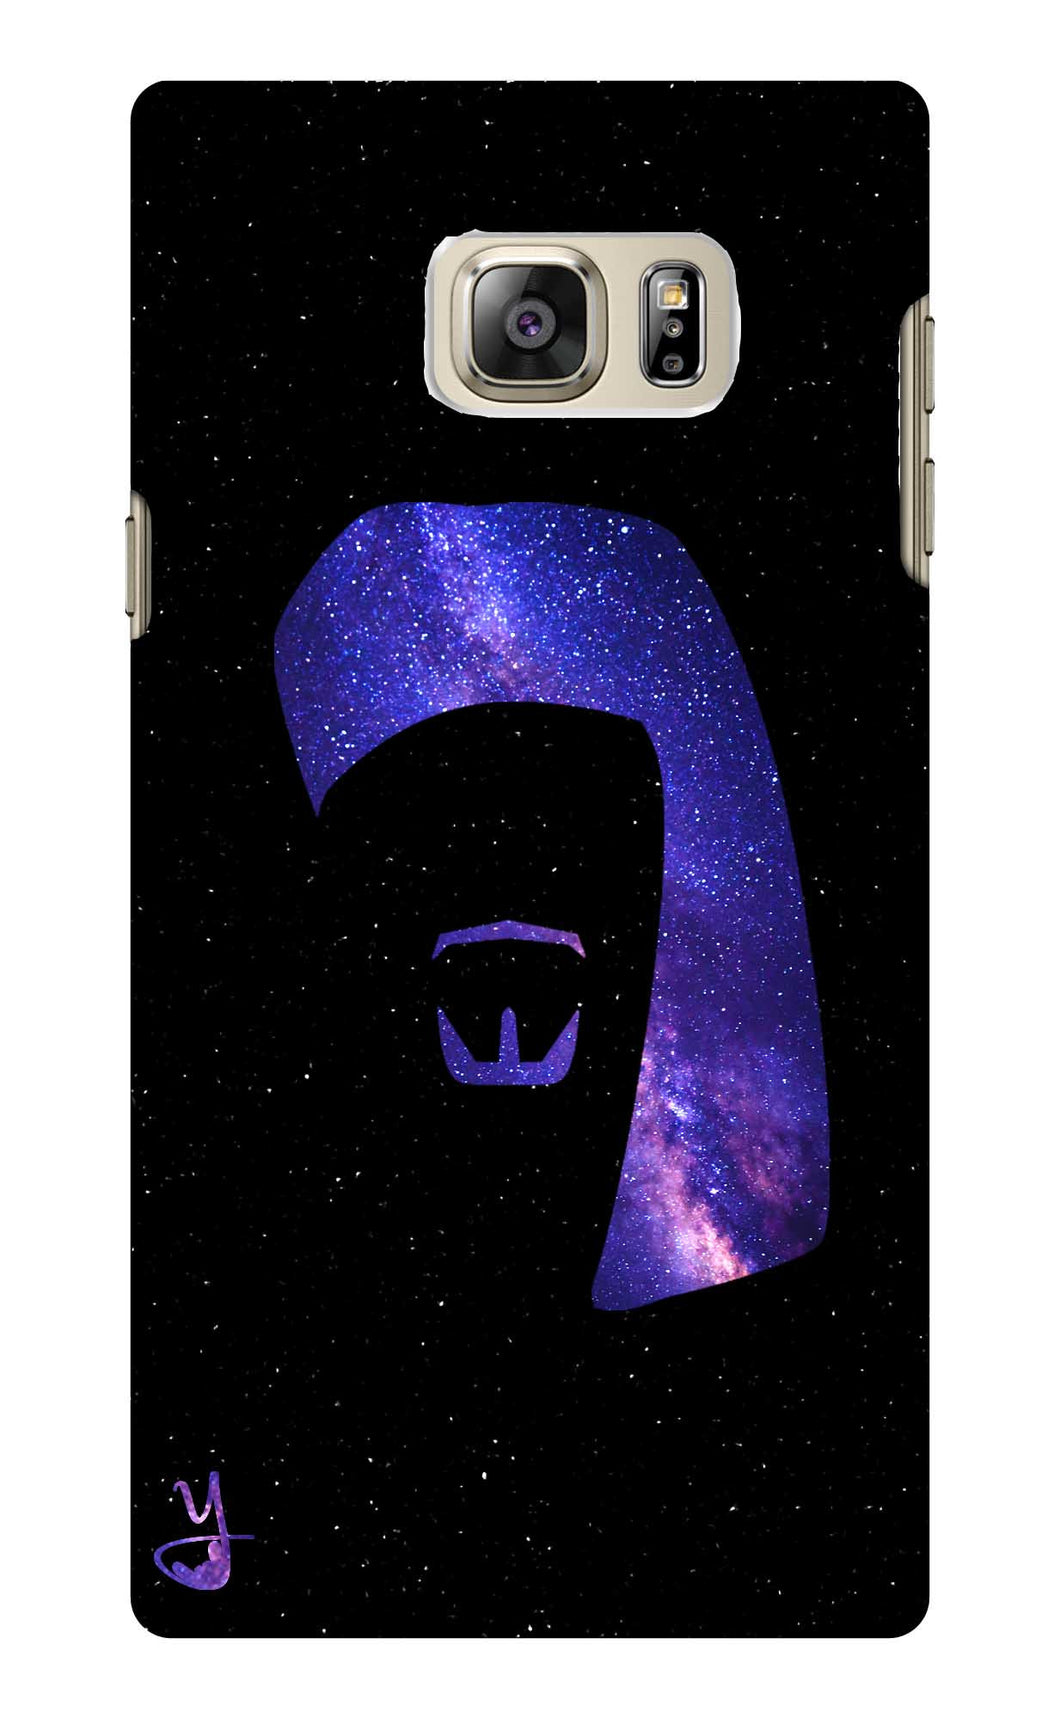 Mr. Hola Galaxy Edition